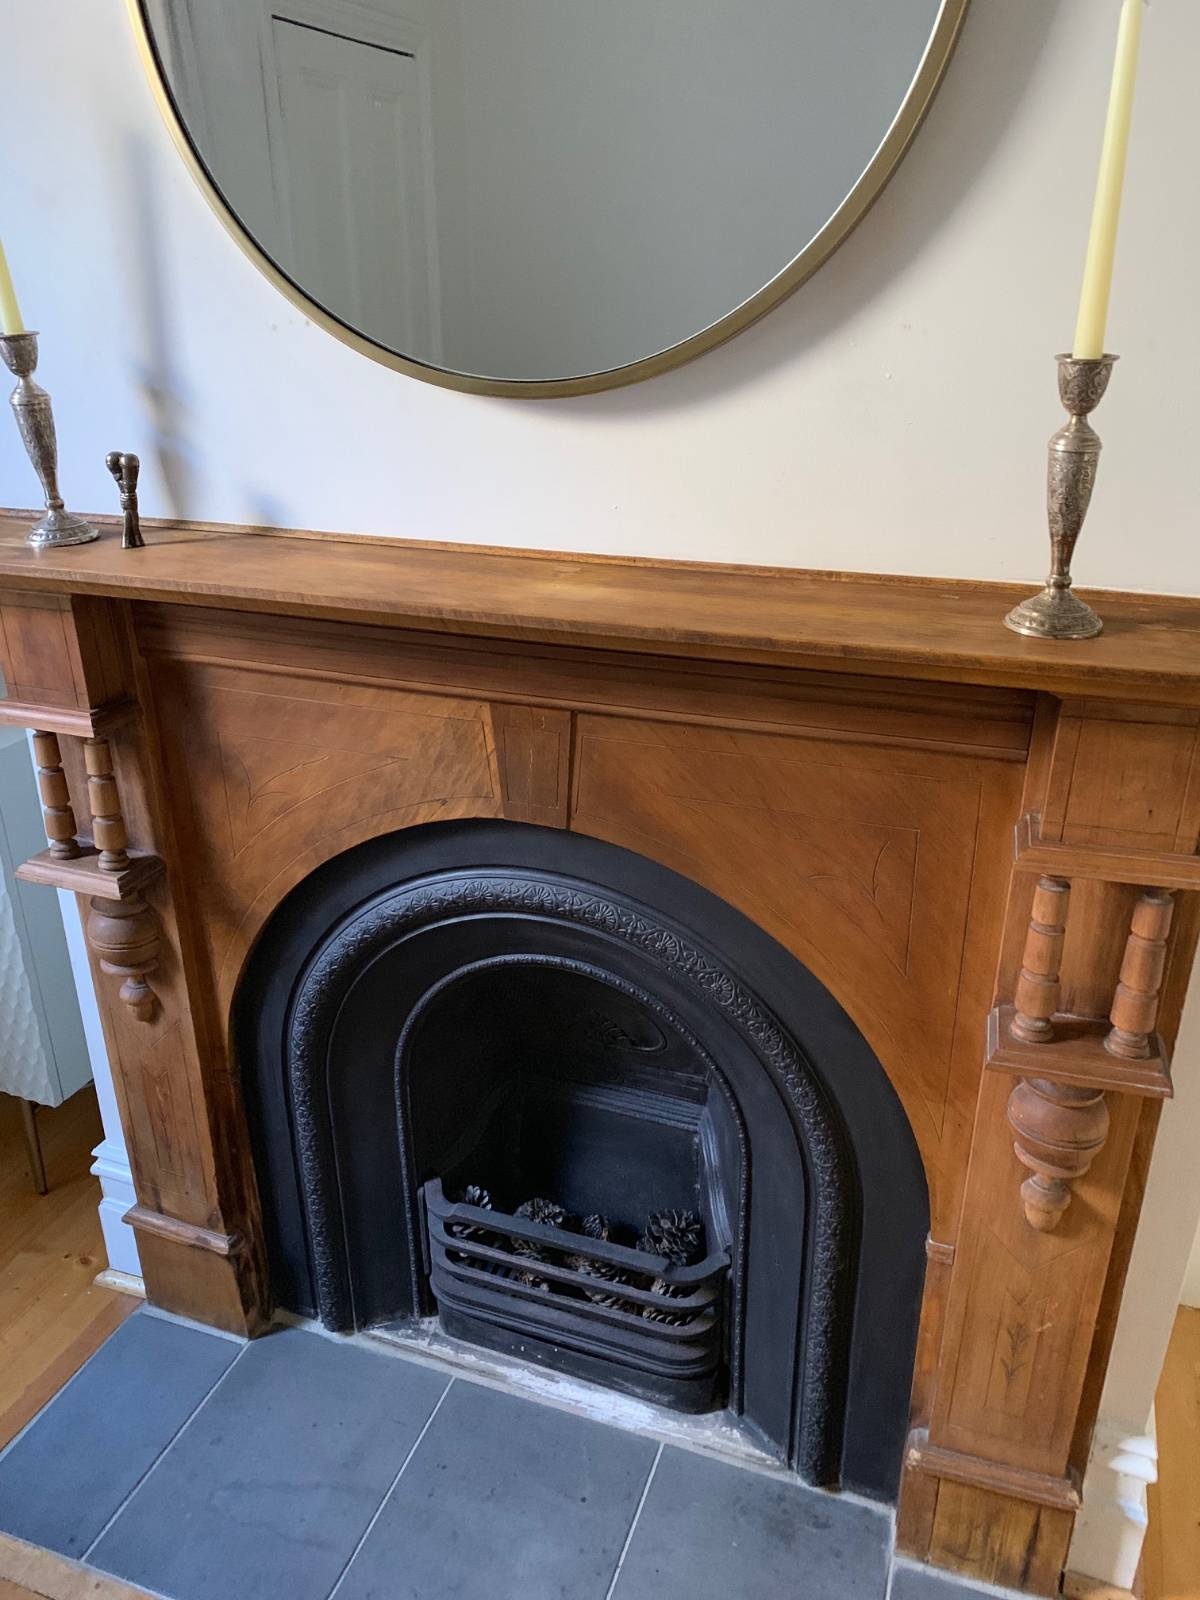 What kind of fireplace is this?